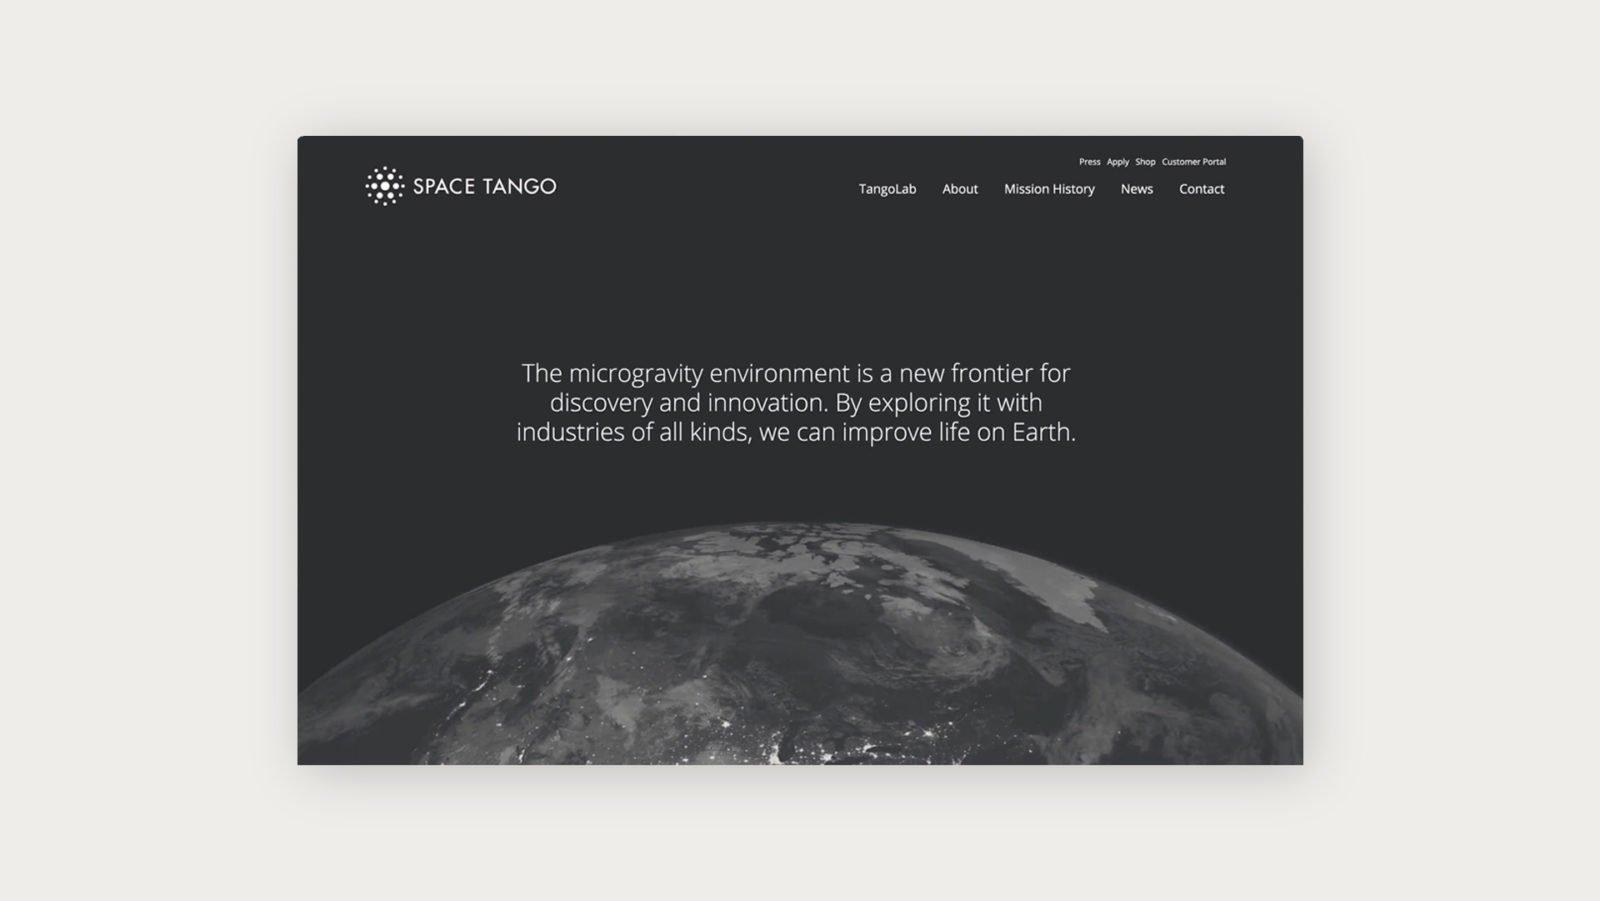 Brand Identity and Website design for Space Tango, a microgravity research and manufacturing company